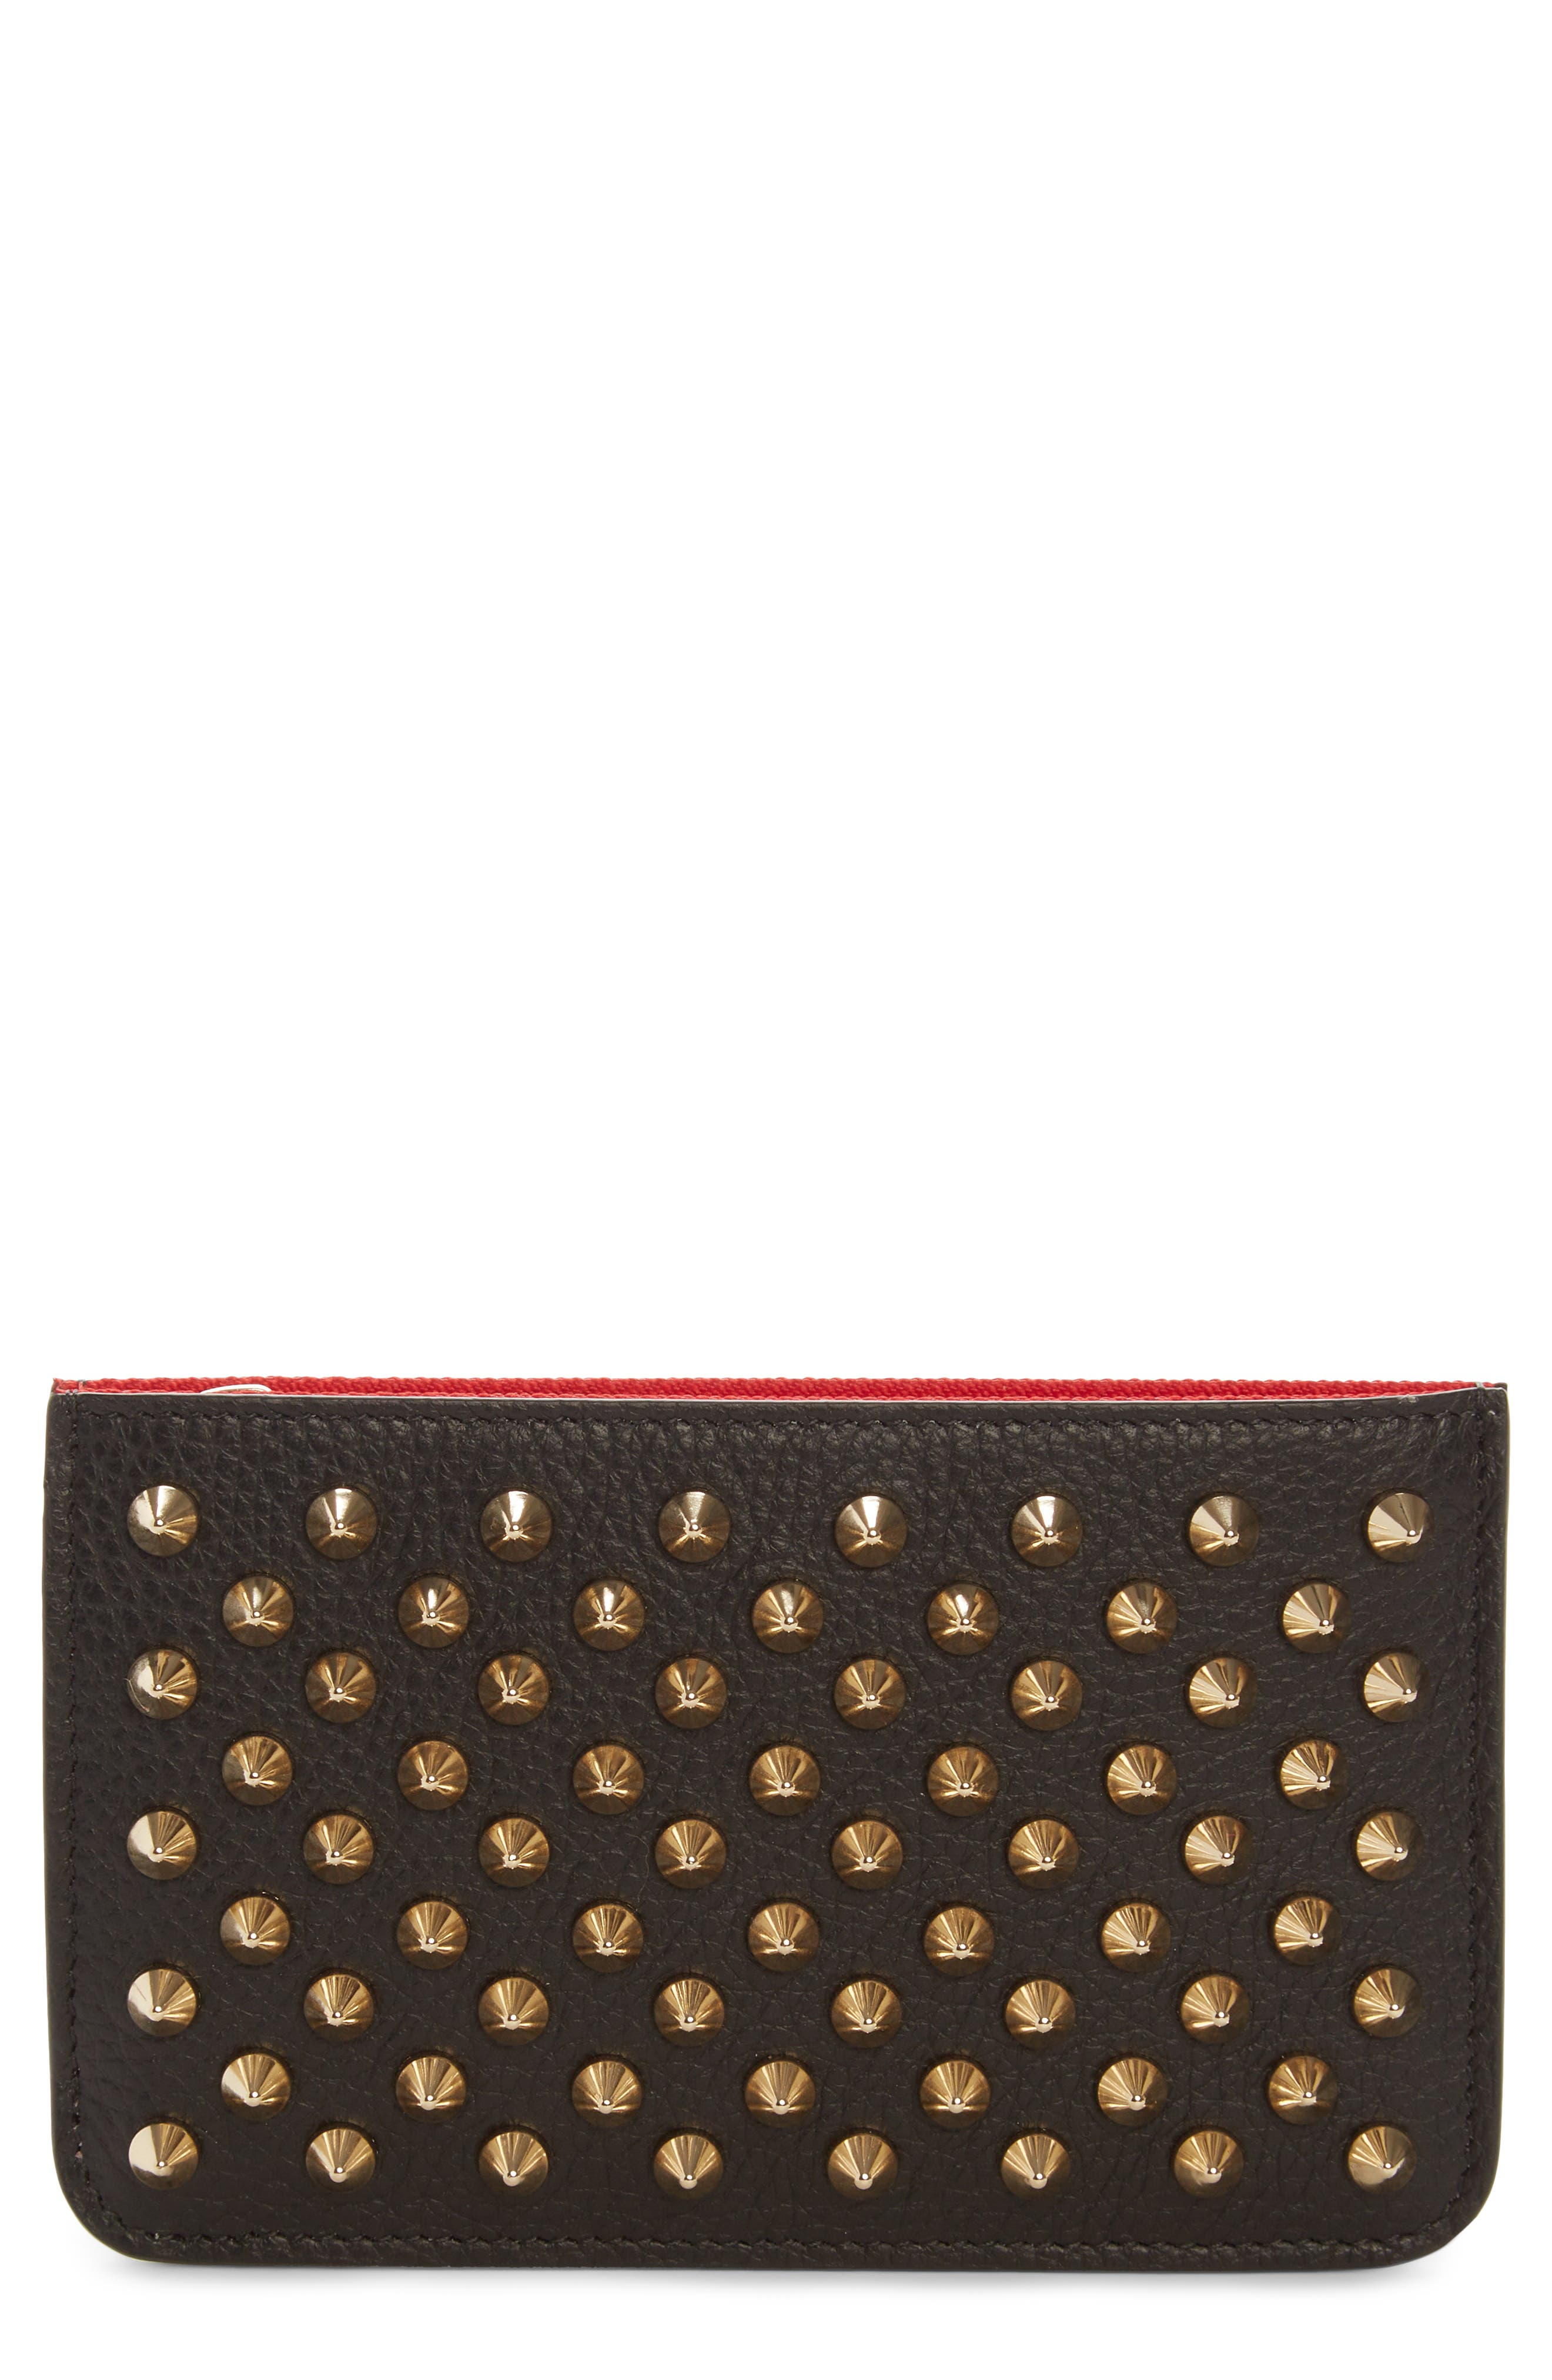 Panettone Studded Leather Key Case,                         Main,                         color, Black/ Gold